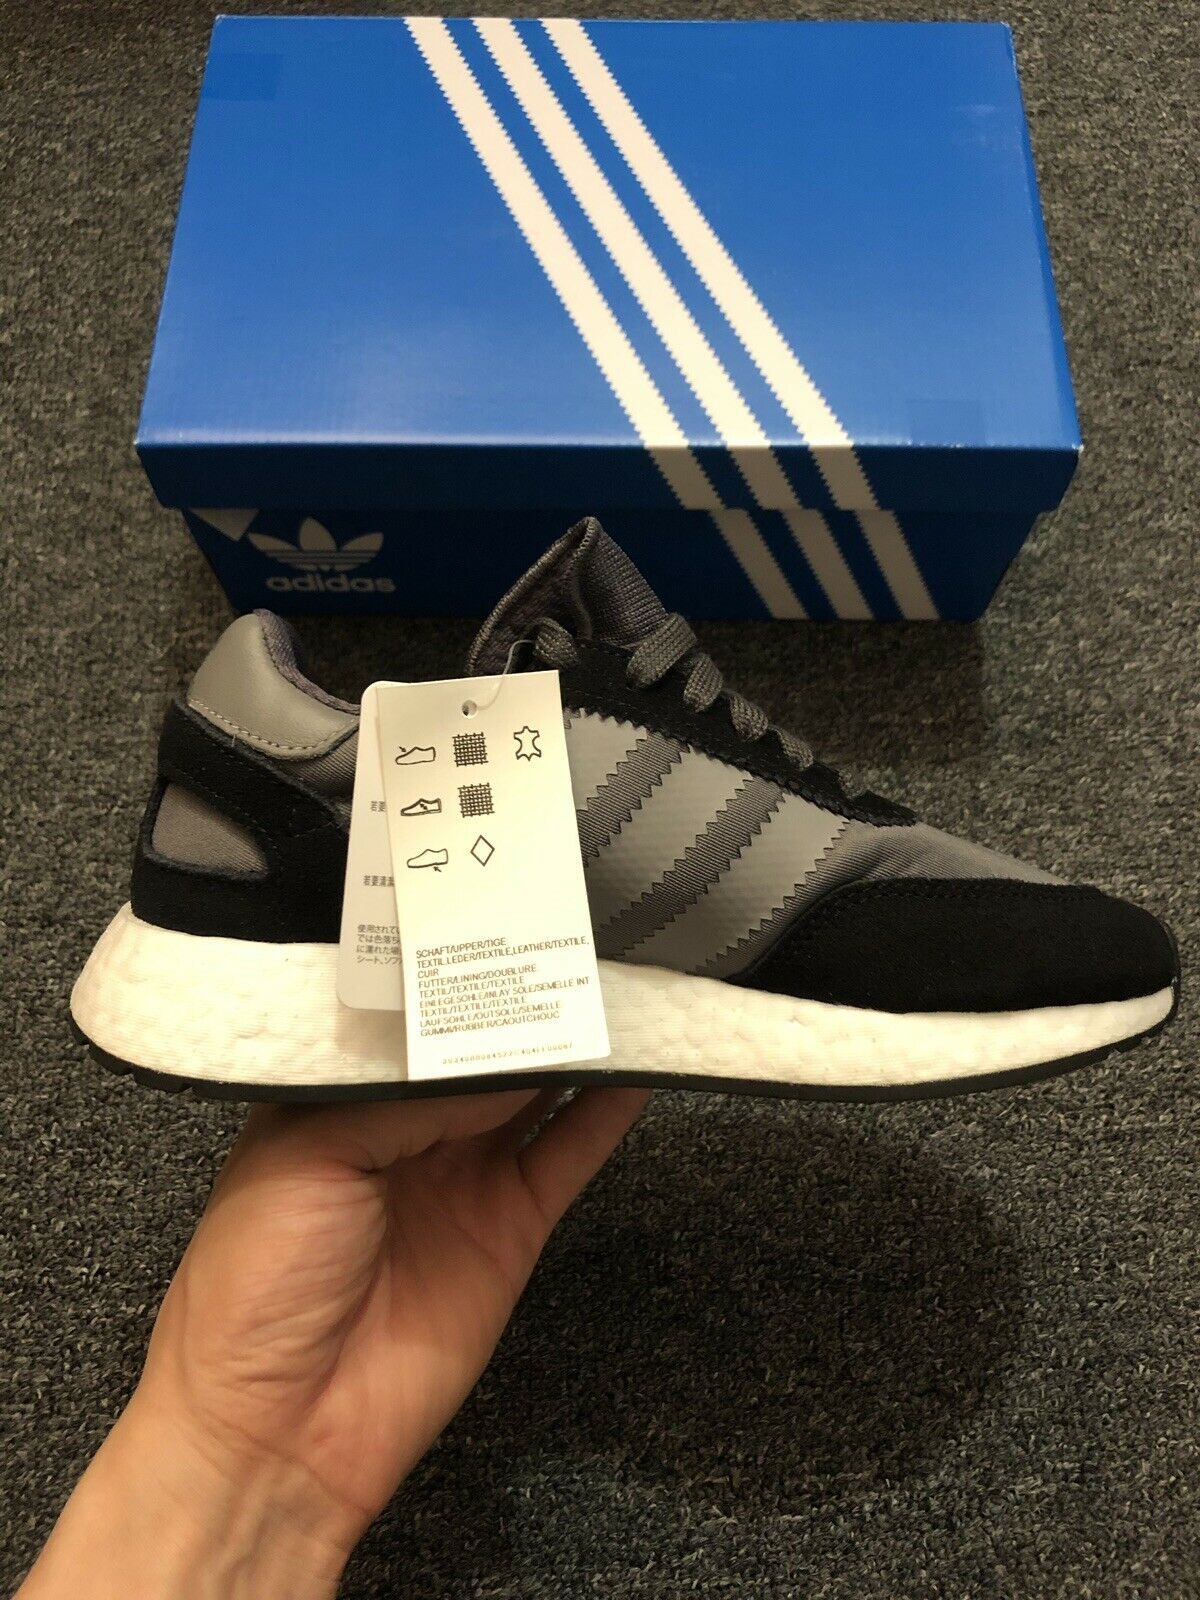 NWT  Women's Size 5 (Euro 36) Adidas Originals I-5923 Boost Running shoes D97353  trendy